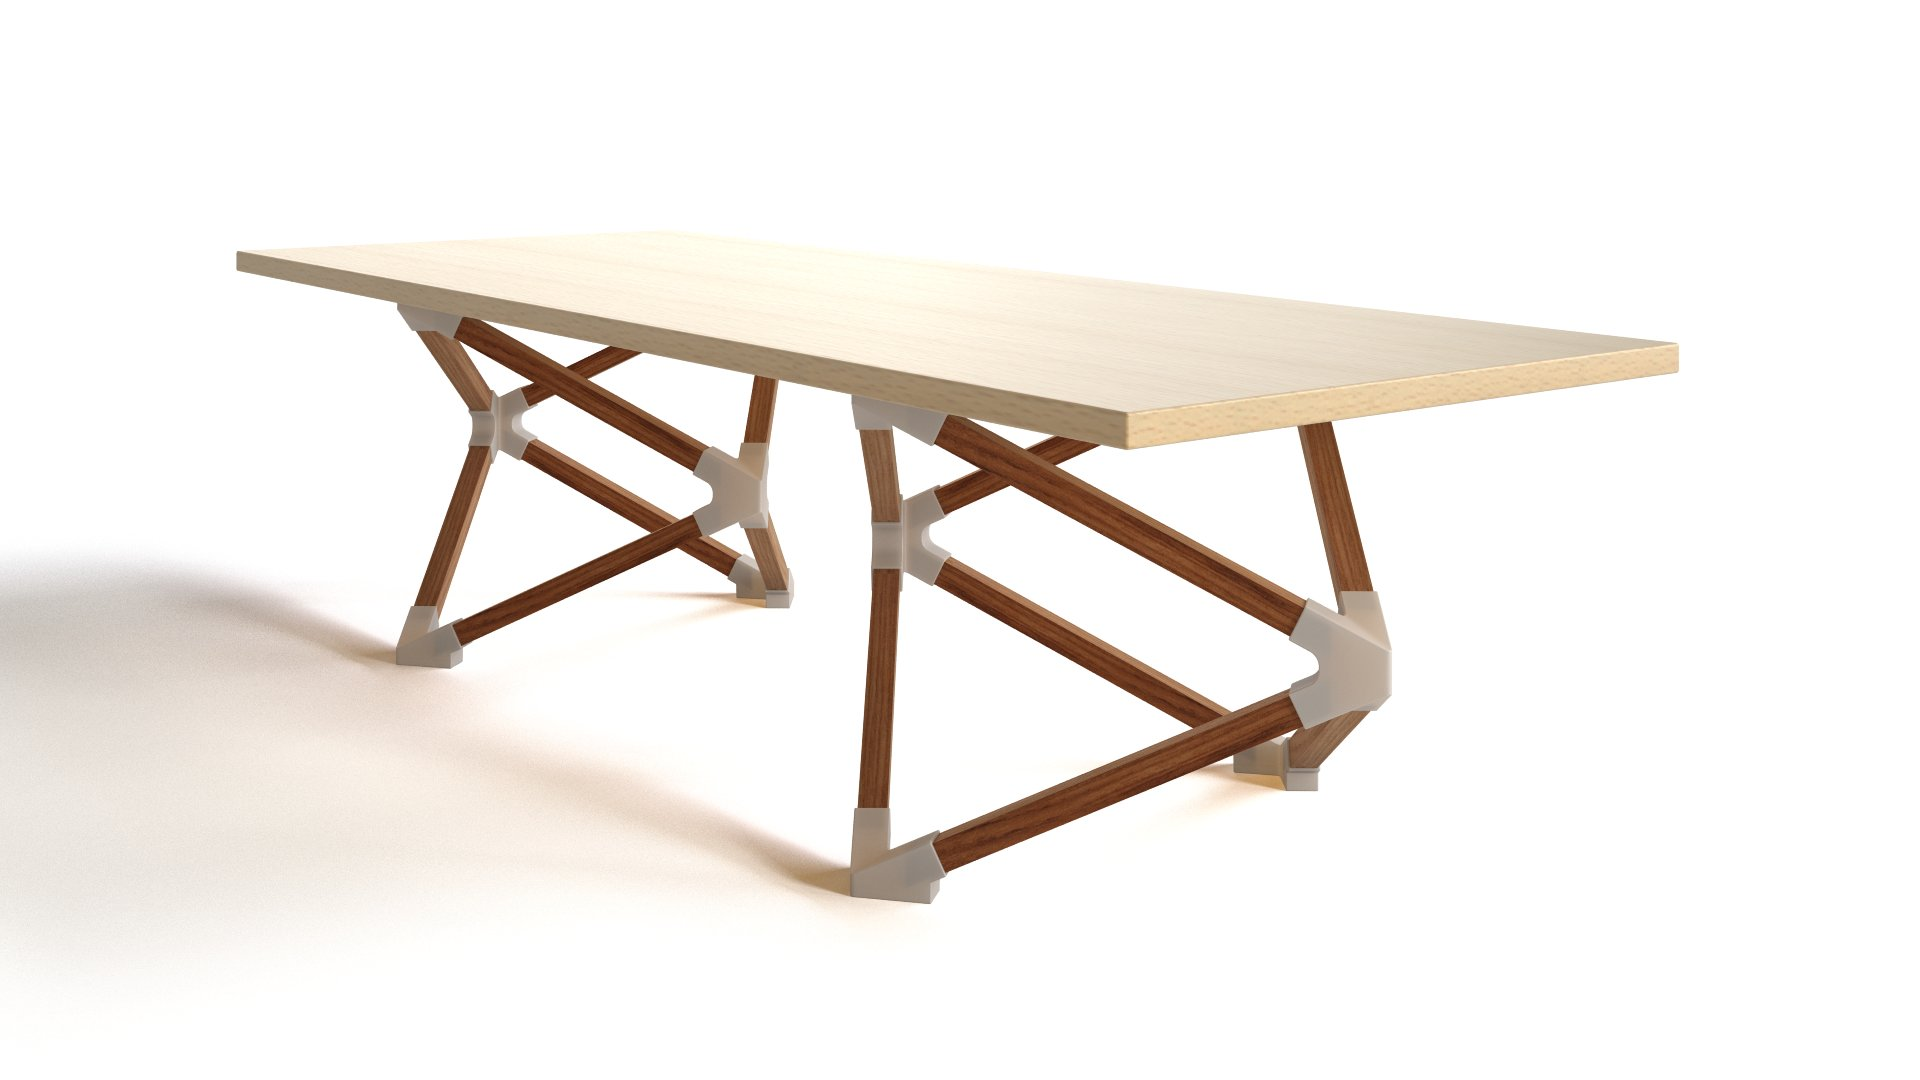 HEDRON coffee table by Benjamin Migliore